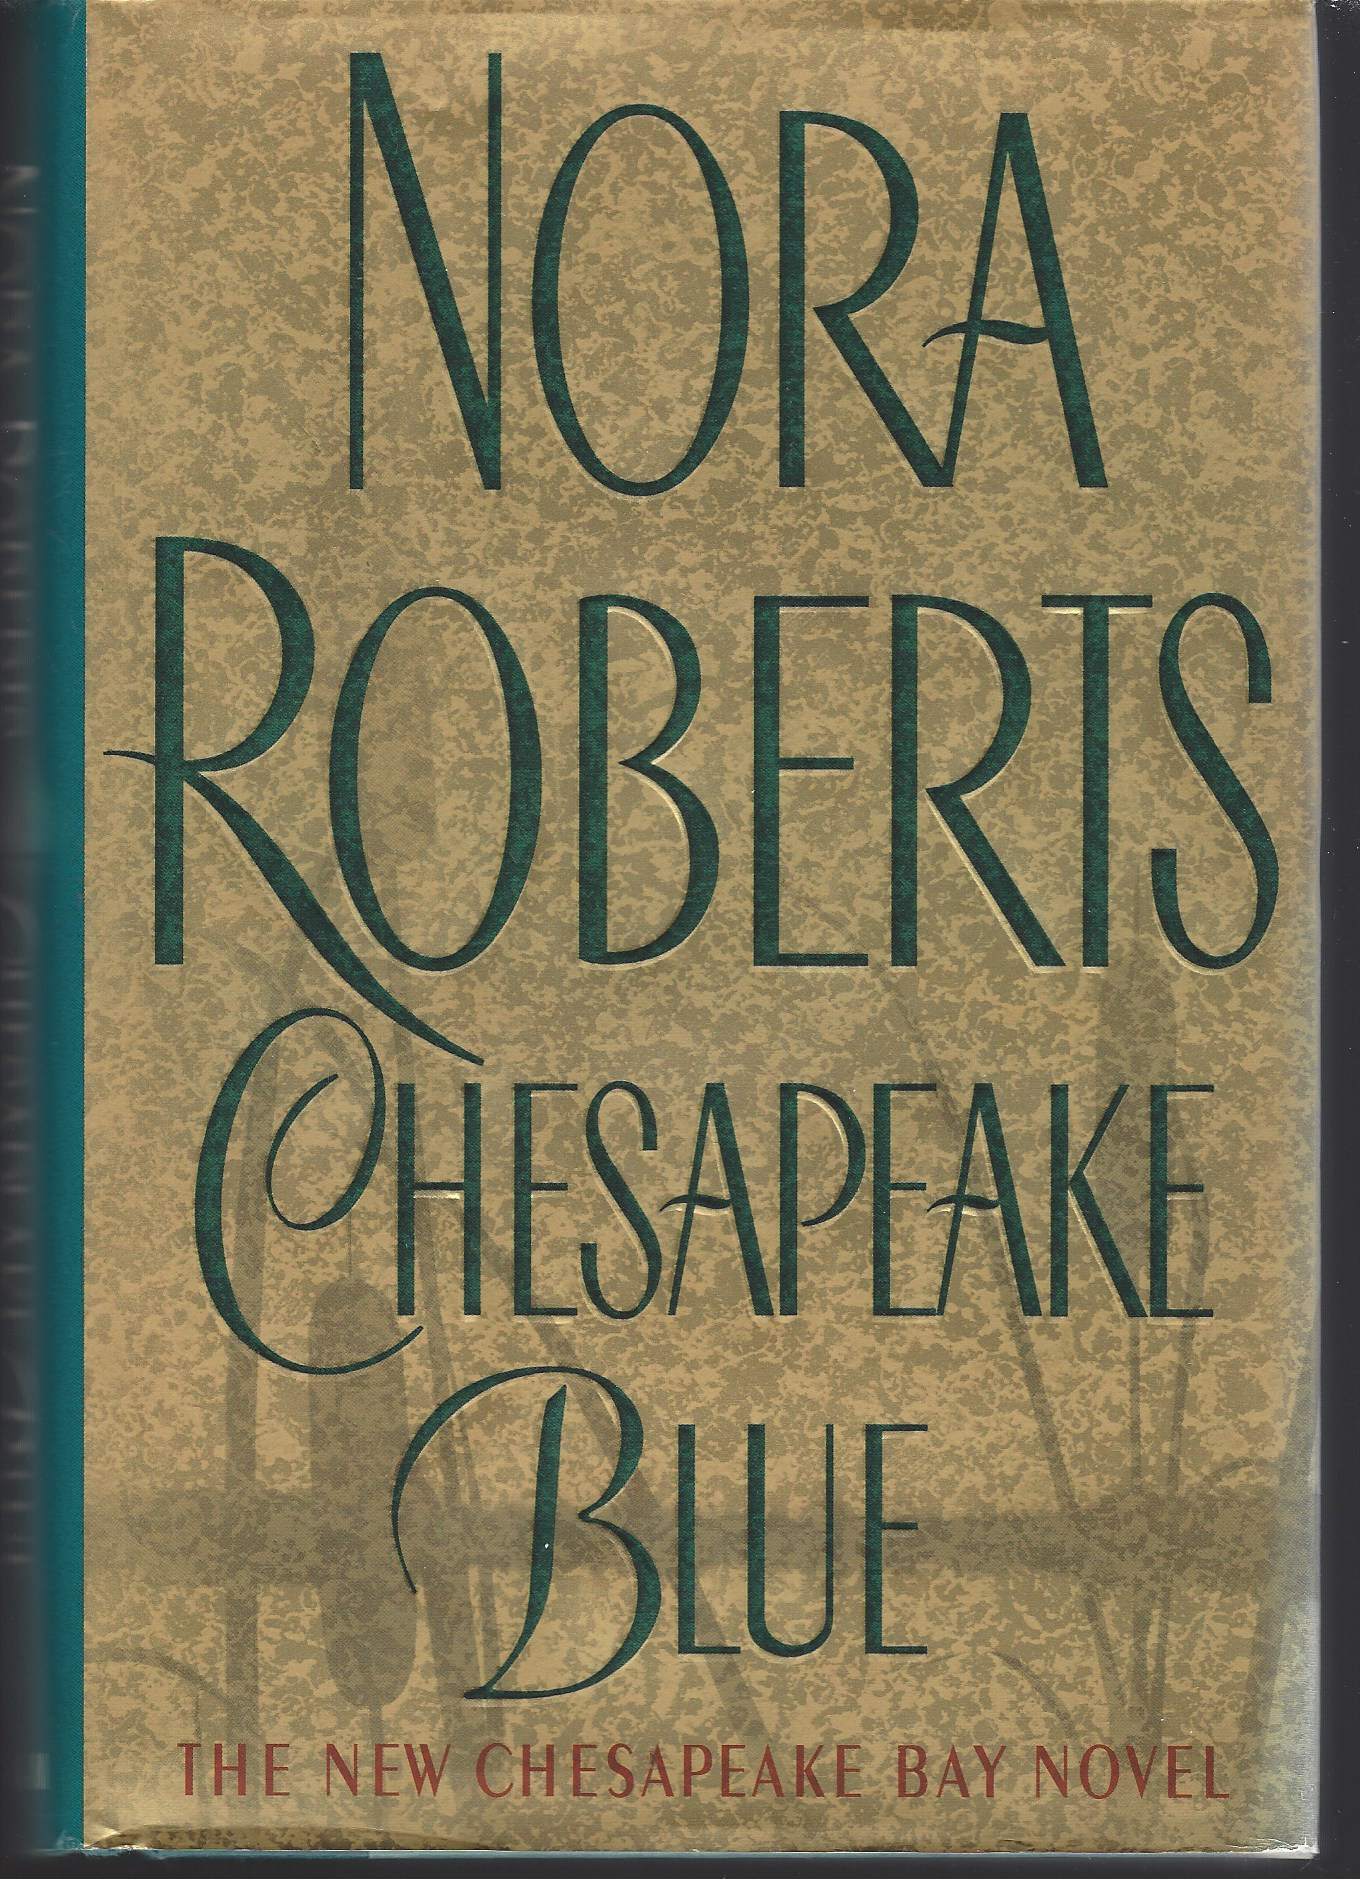 Image for CHESAPEAKE BLUE